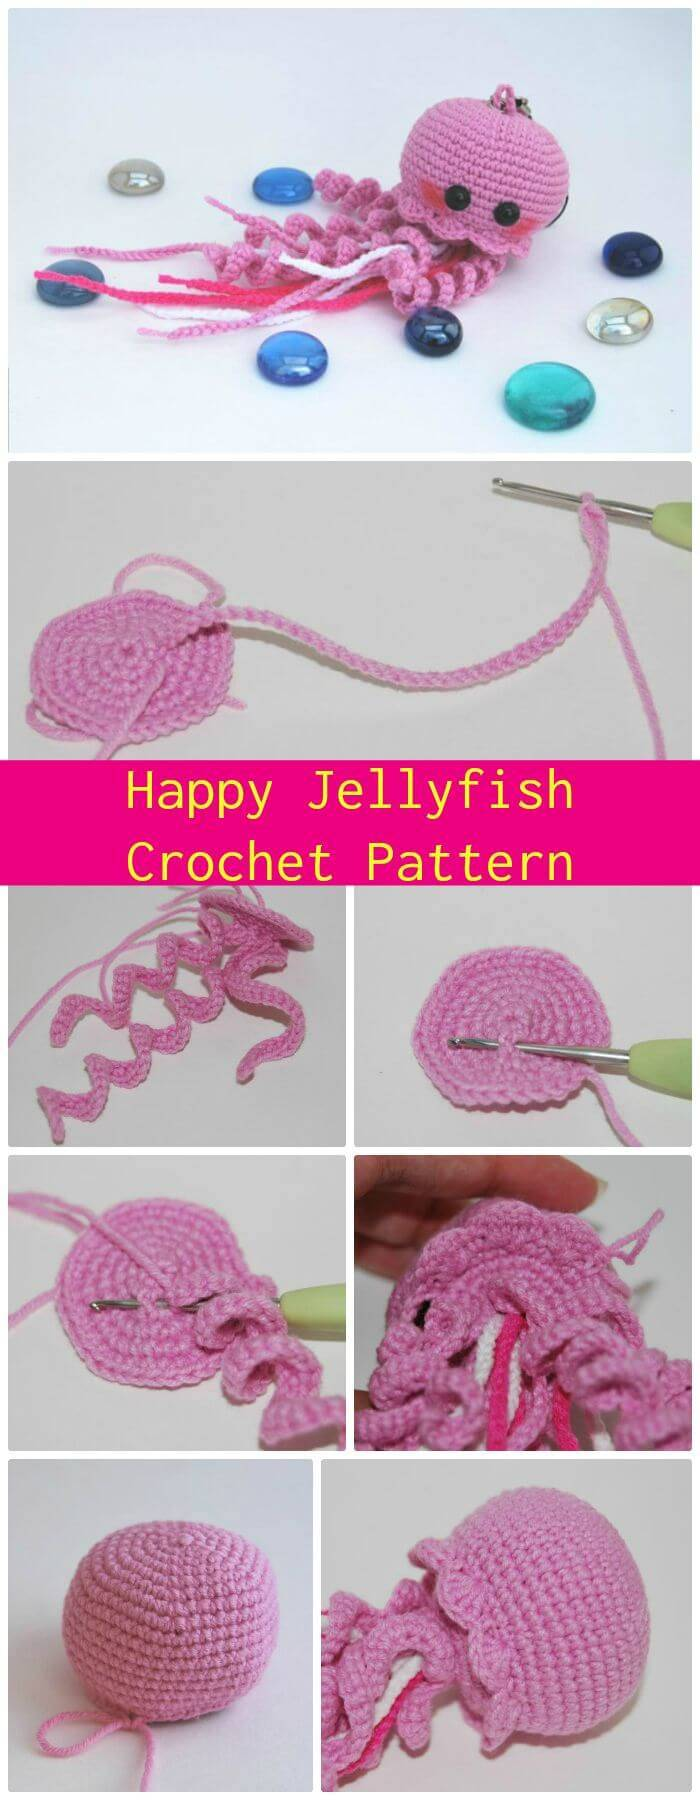 How to crochet jellyfish images download your million guide and crochet jellyfish 14 free crochet patterns page 2 of 3 diy diy happy jellyfish amigurumi crochet bankloansurffo Images